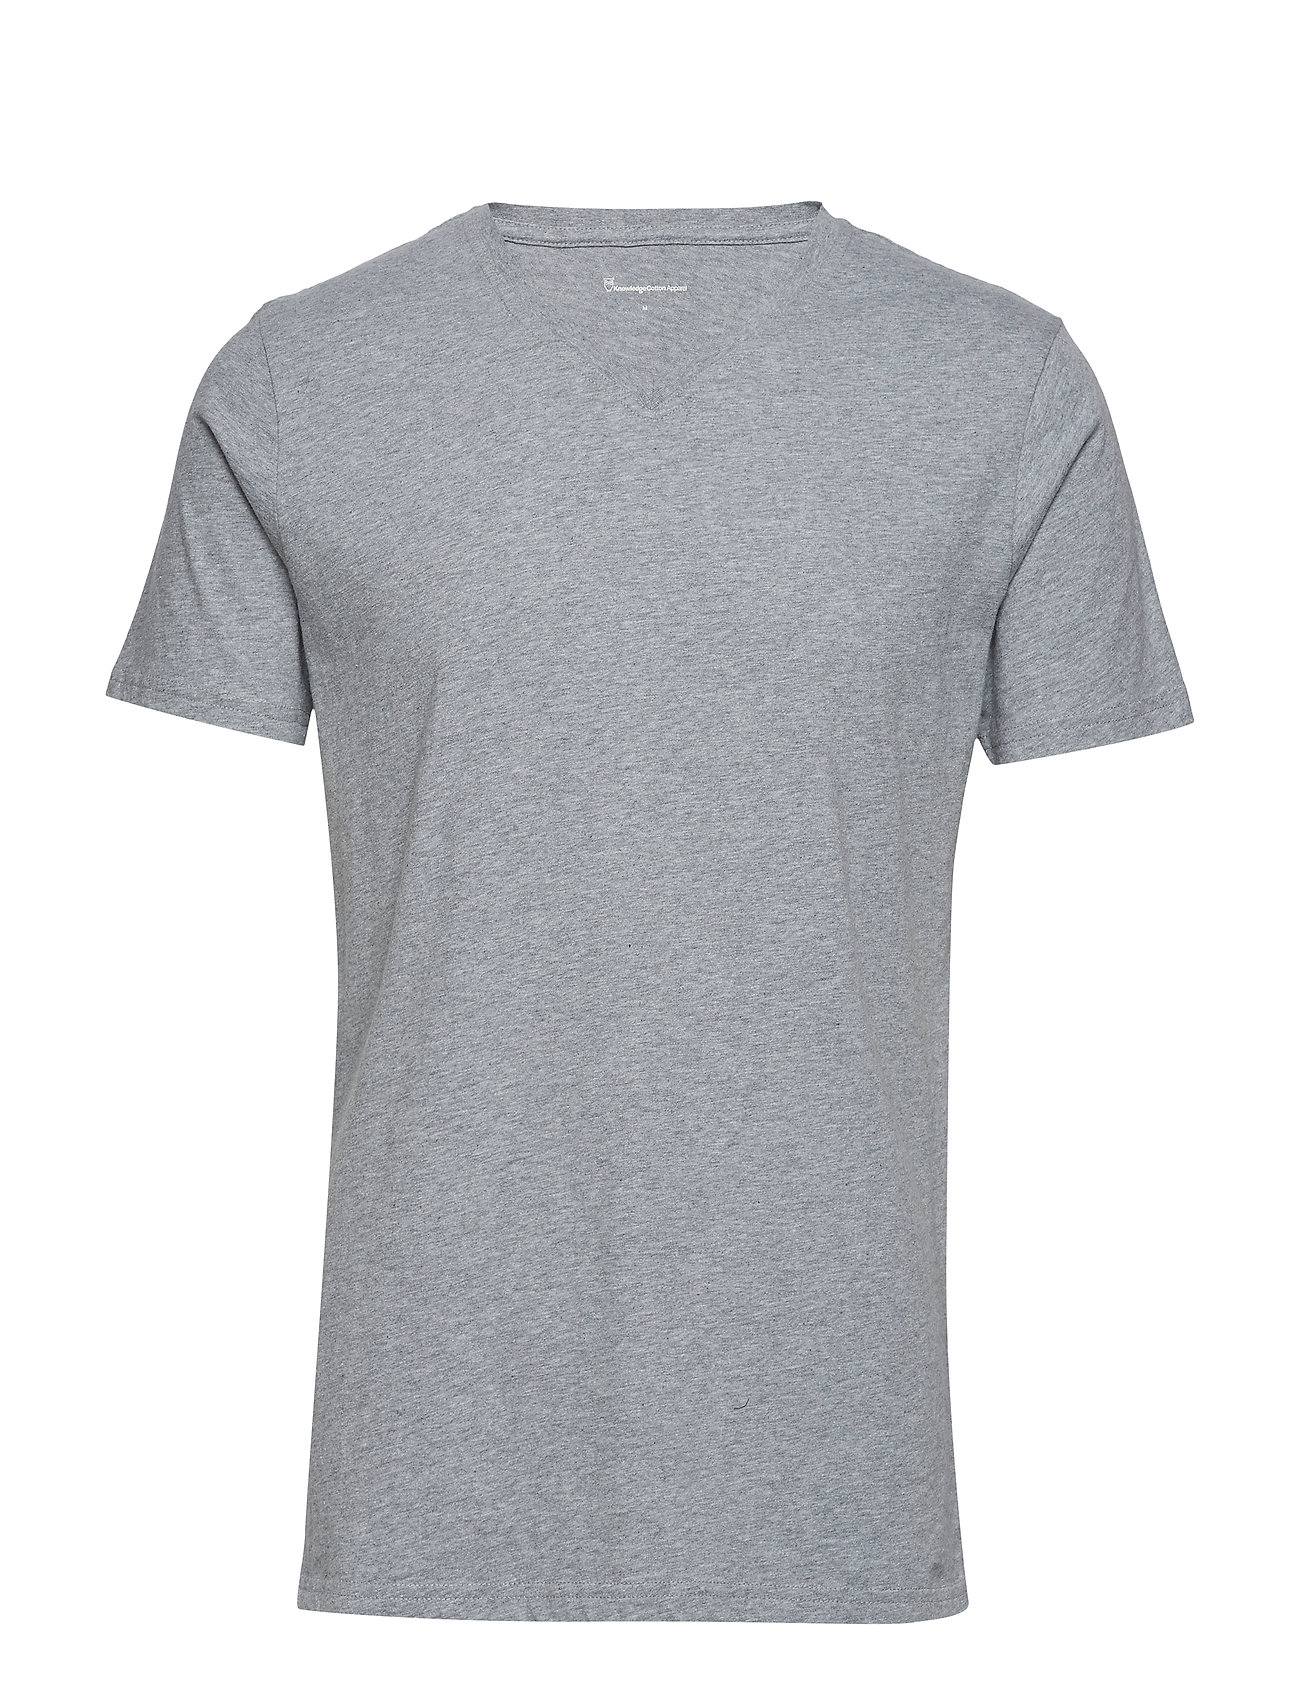 Knowledge Cotton Apparel ALDER basic v-neck tee - GOTS/Vegan - GREY MELANGE